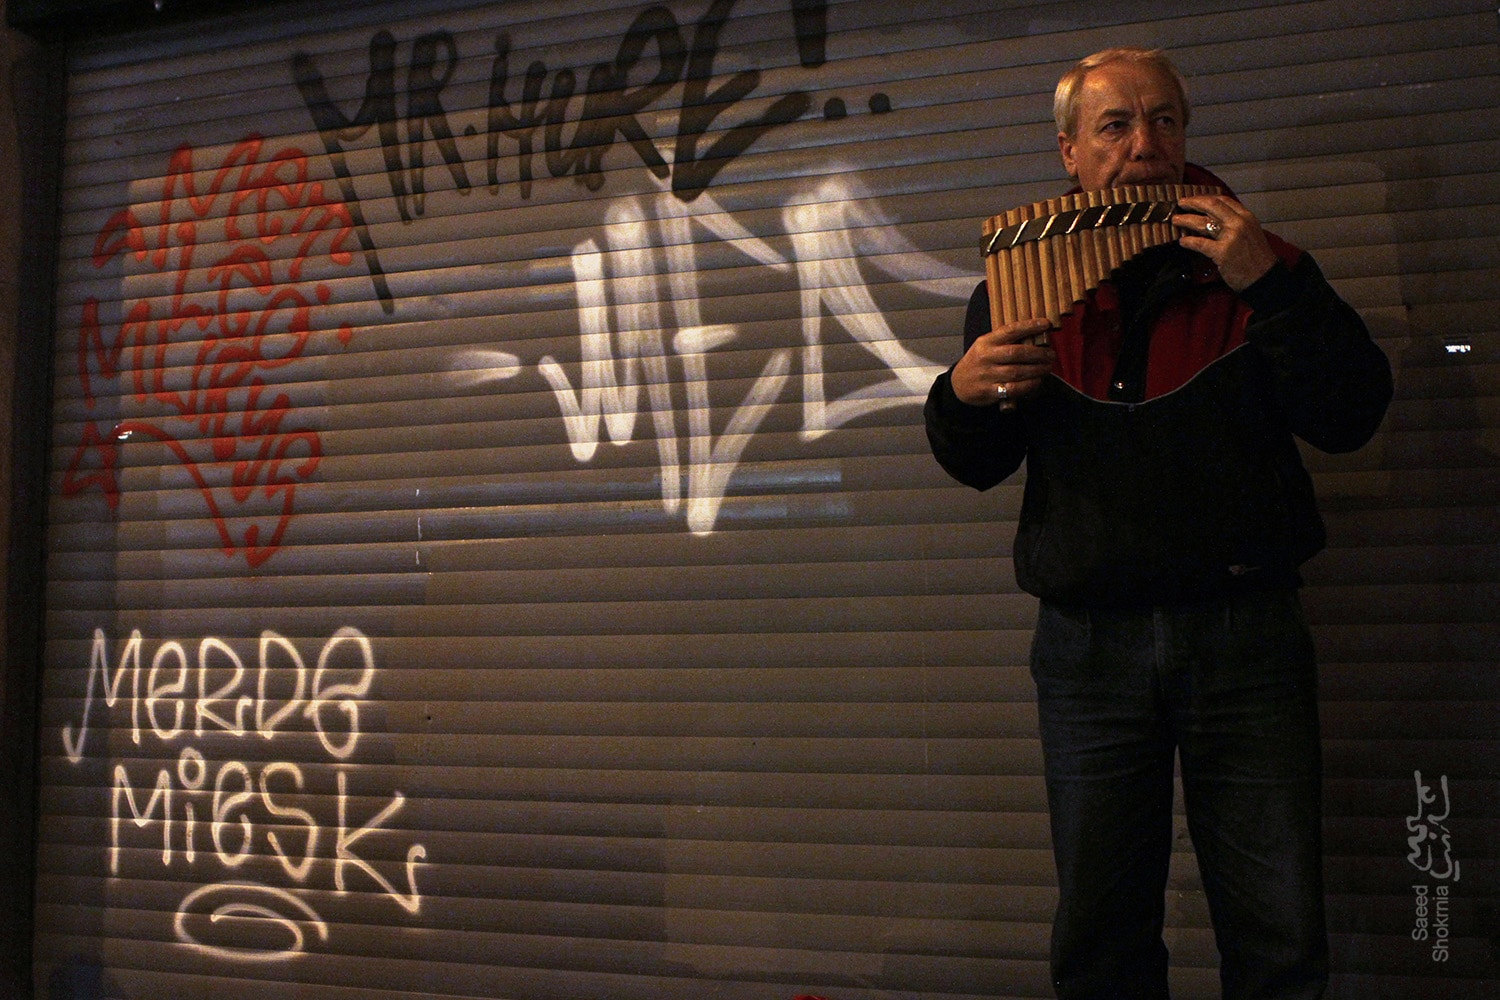 Street Art, Photography, Istanbul, Photo, Man, Musician, Music